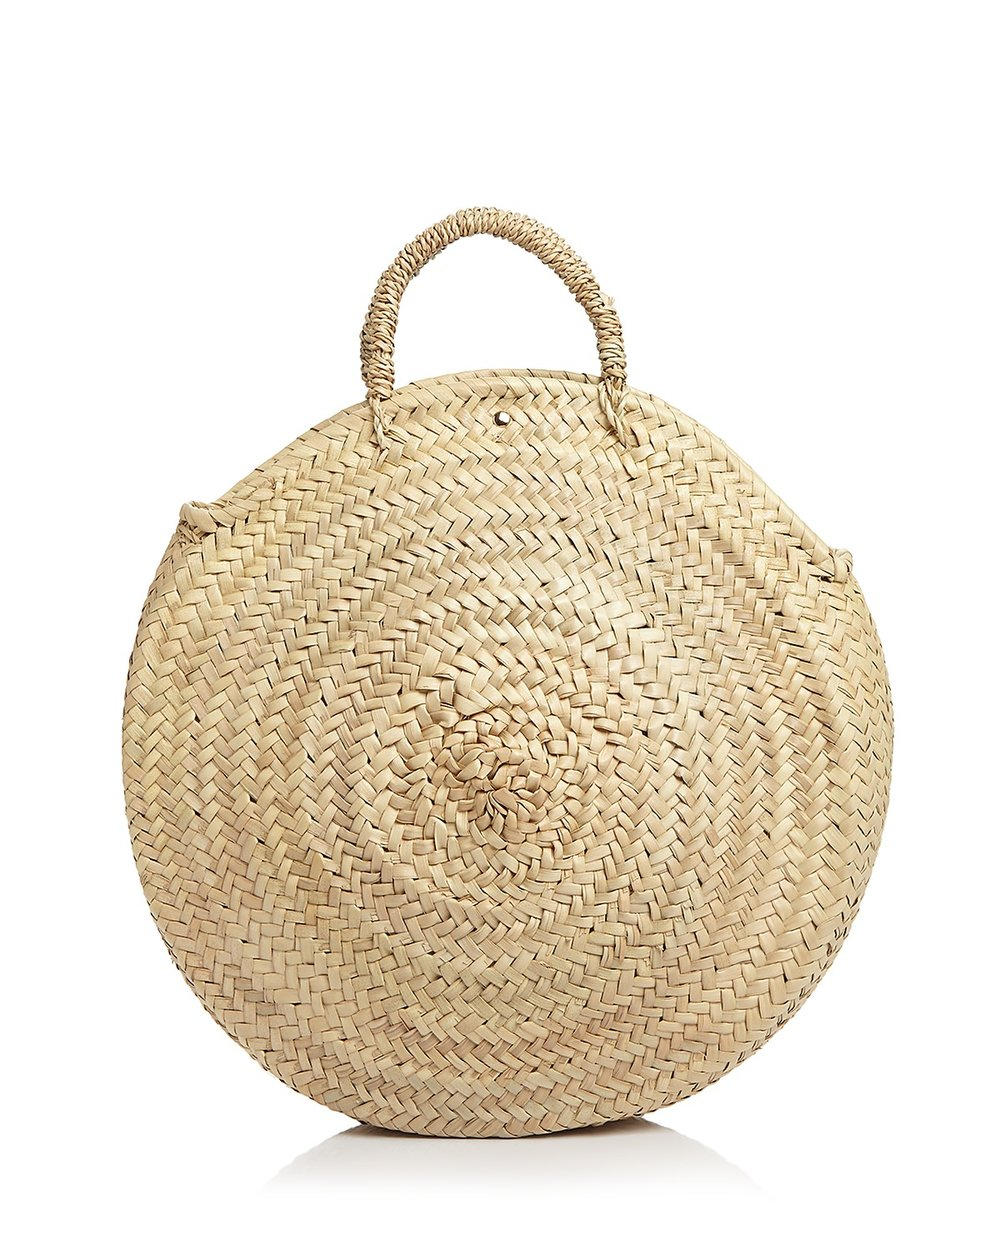 Straw Circle Tote Beach Bag.jpg